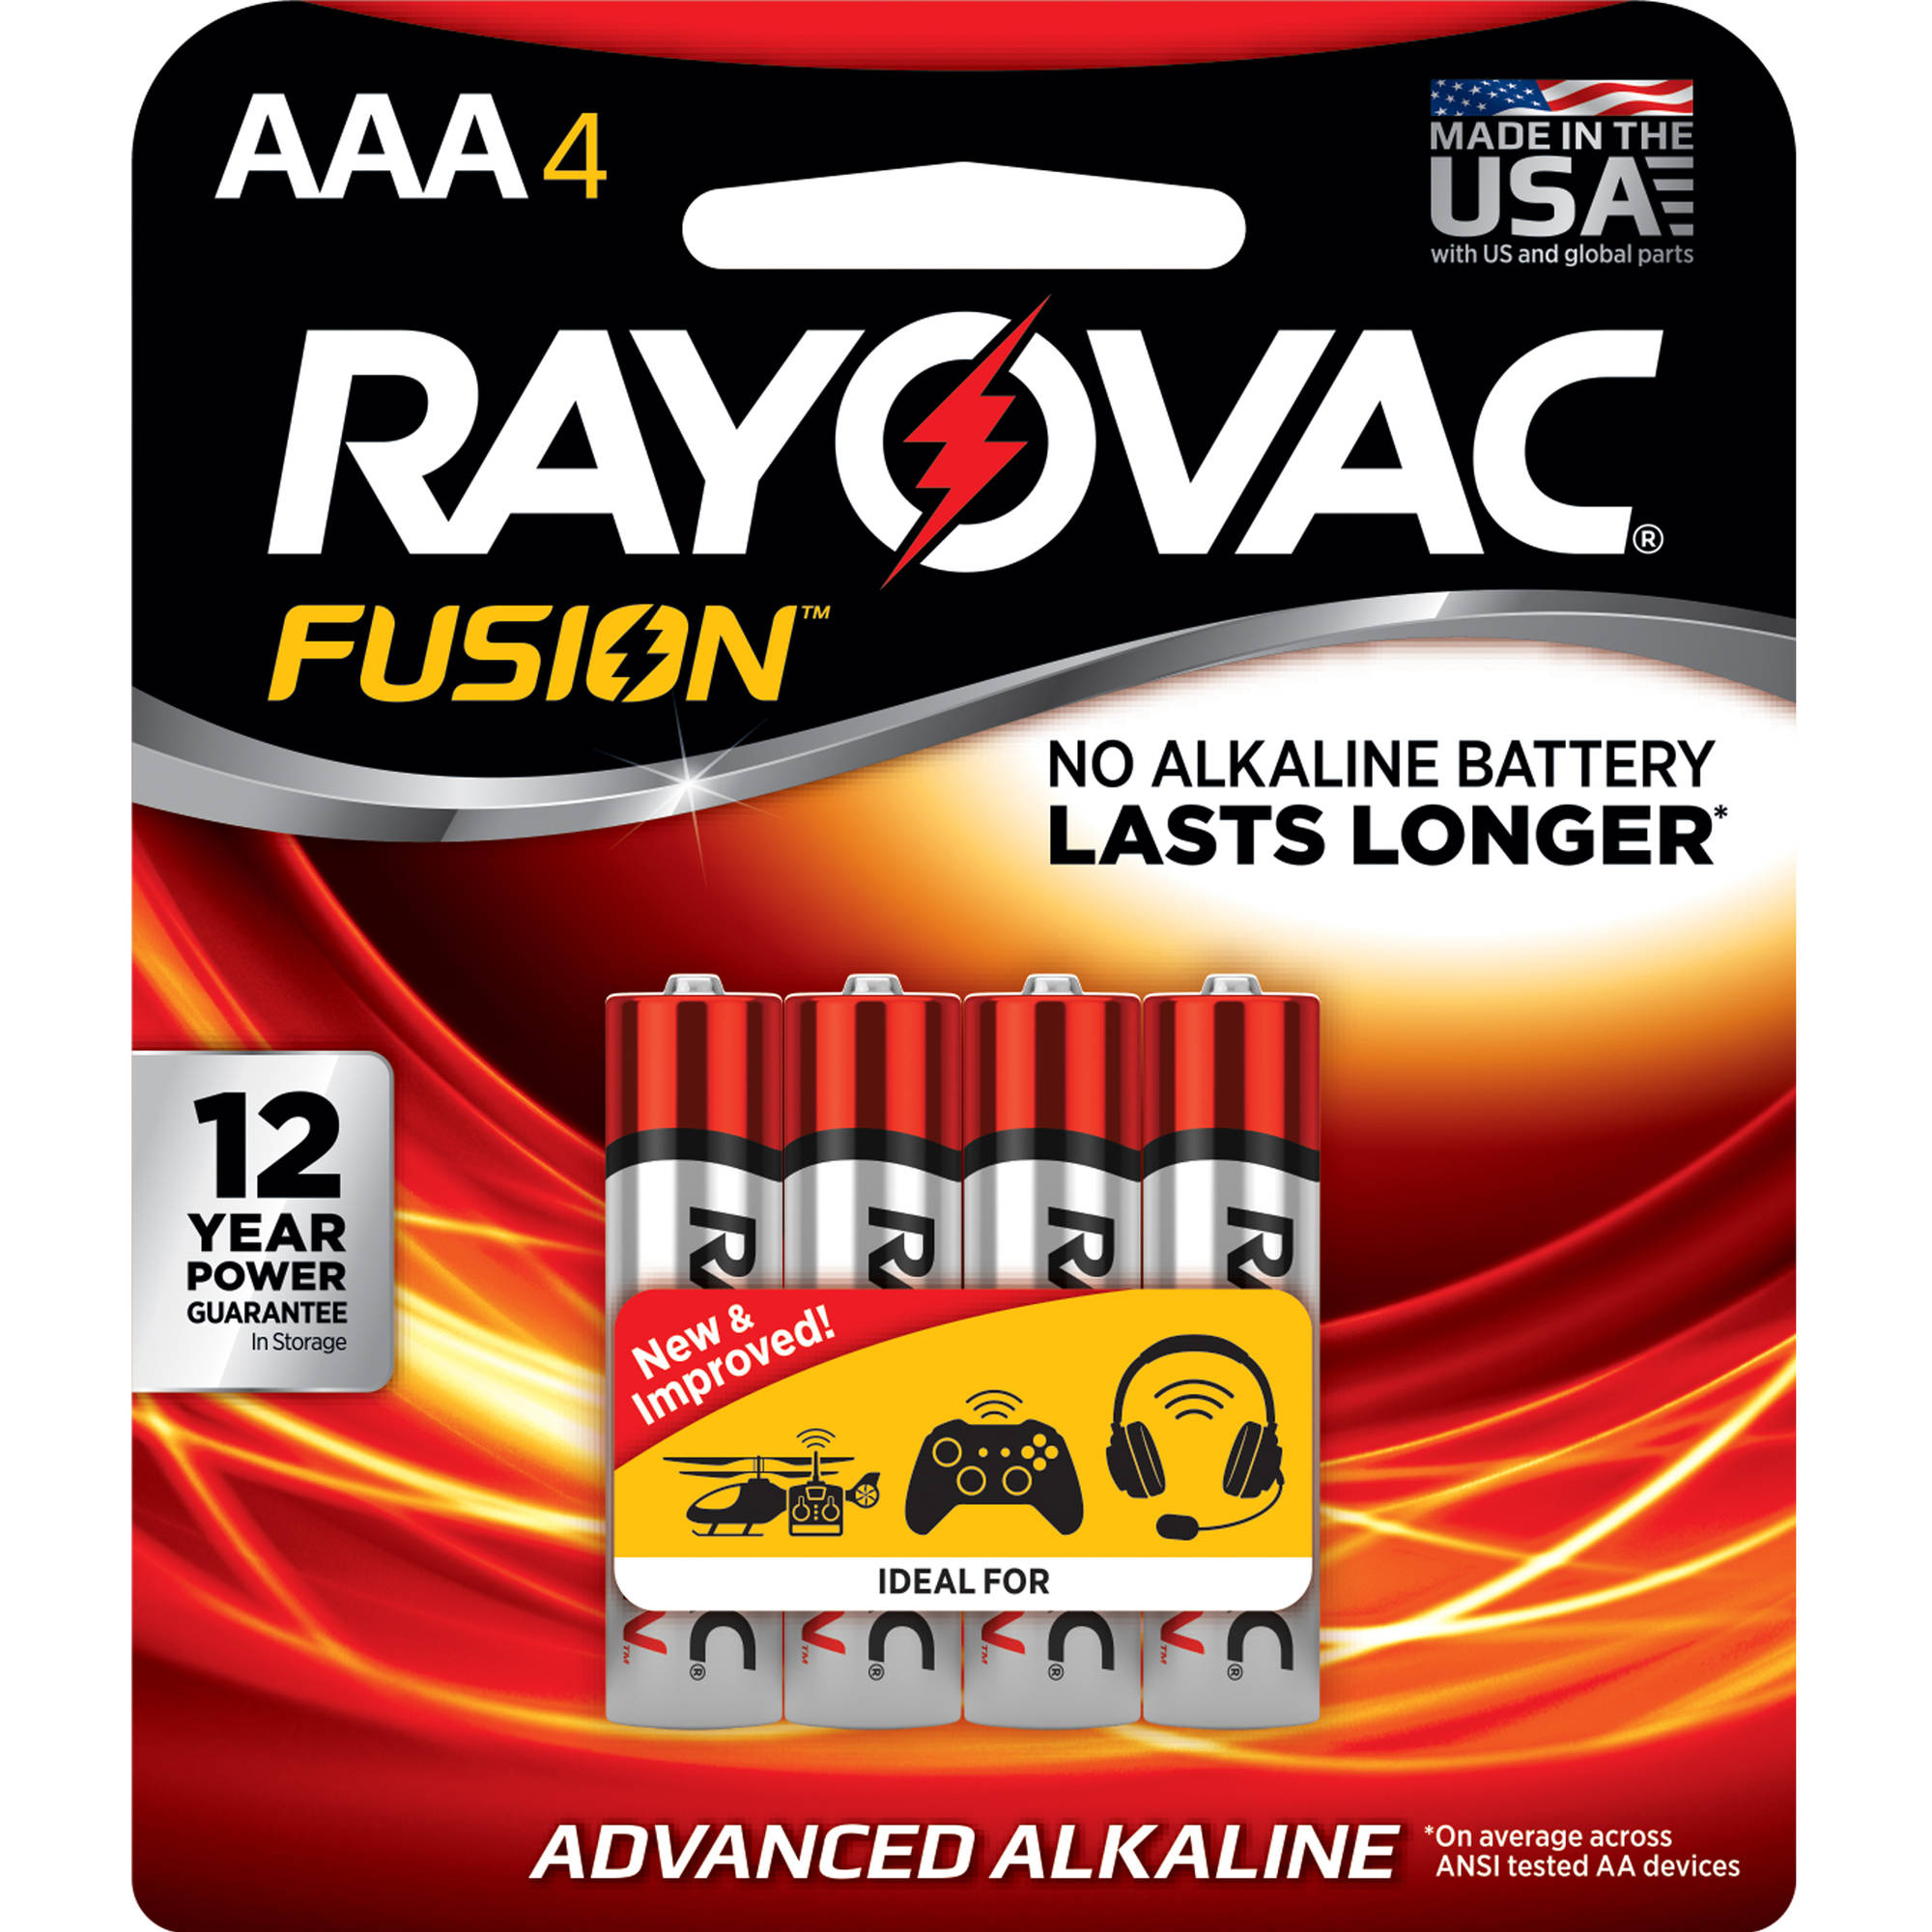 Rayovac Fusion High-Power Alkaline Batteries, Size AAA, 4-Pack